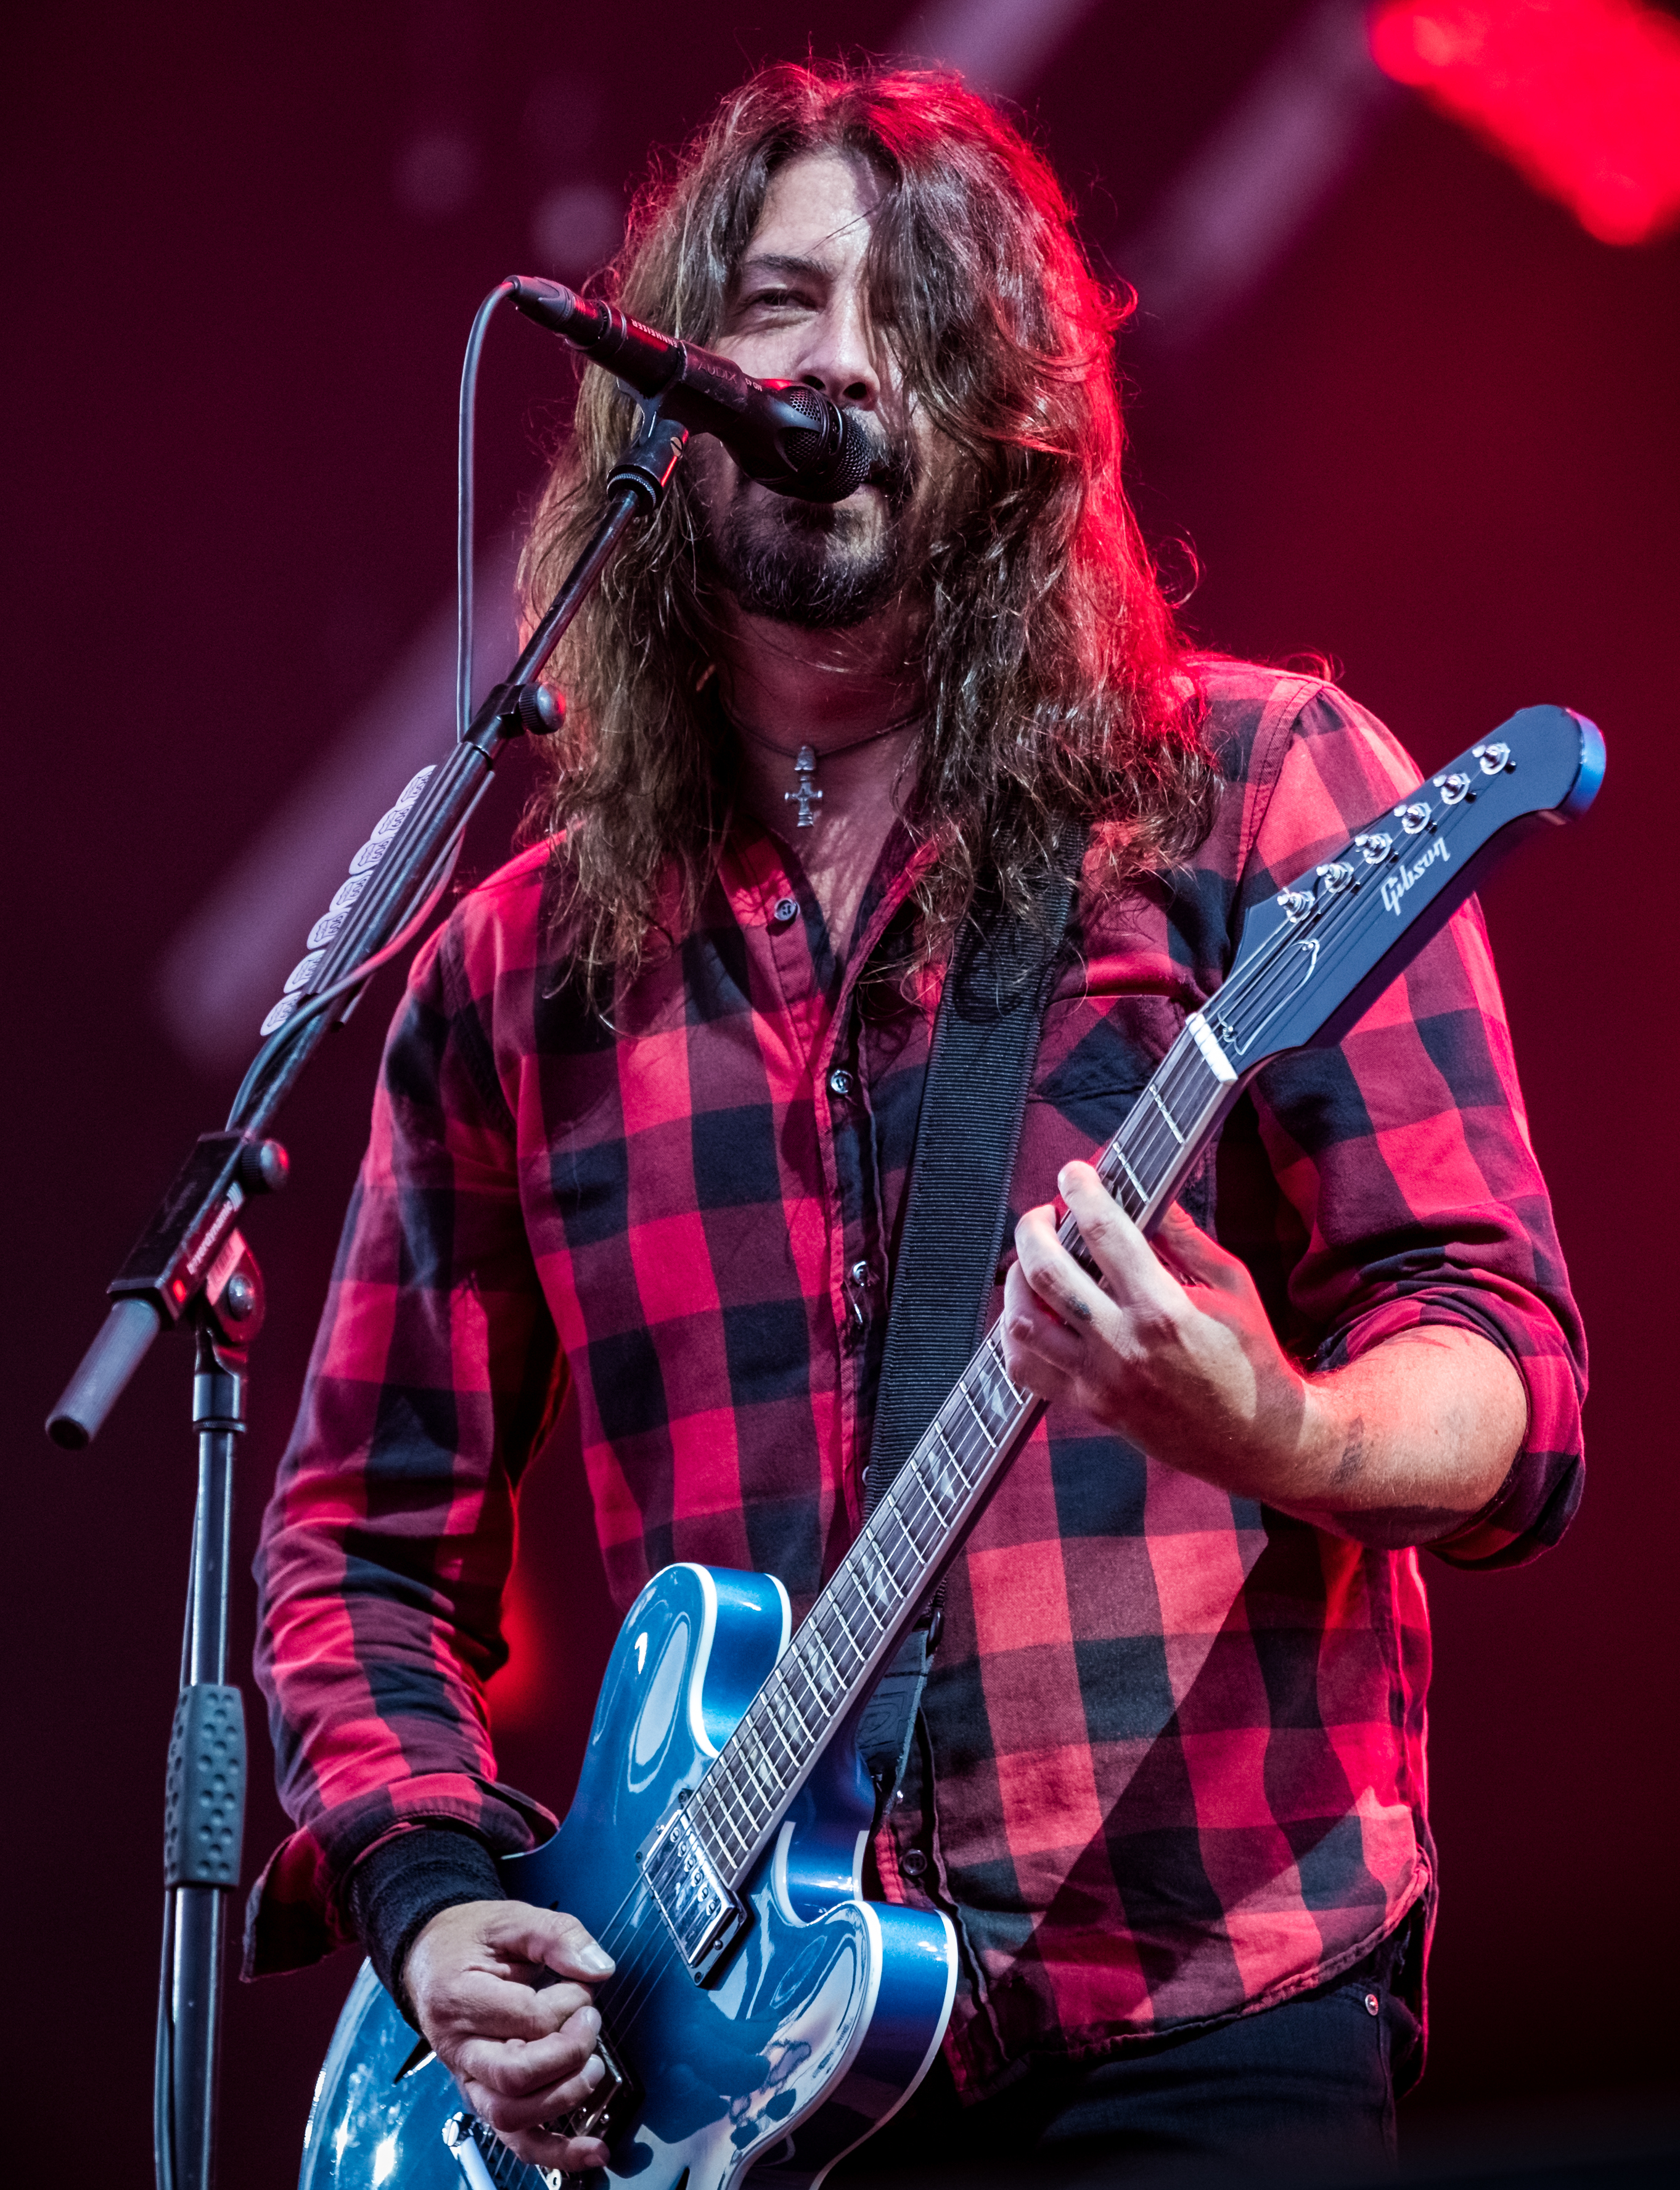 Dave Grohl Wikipedia